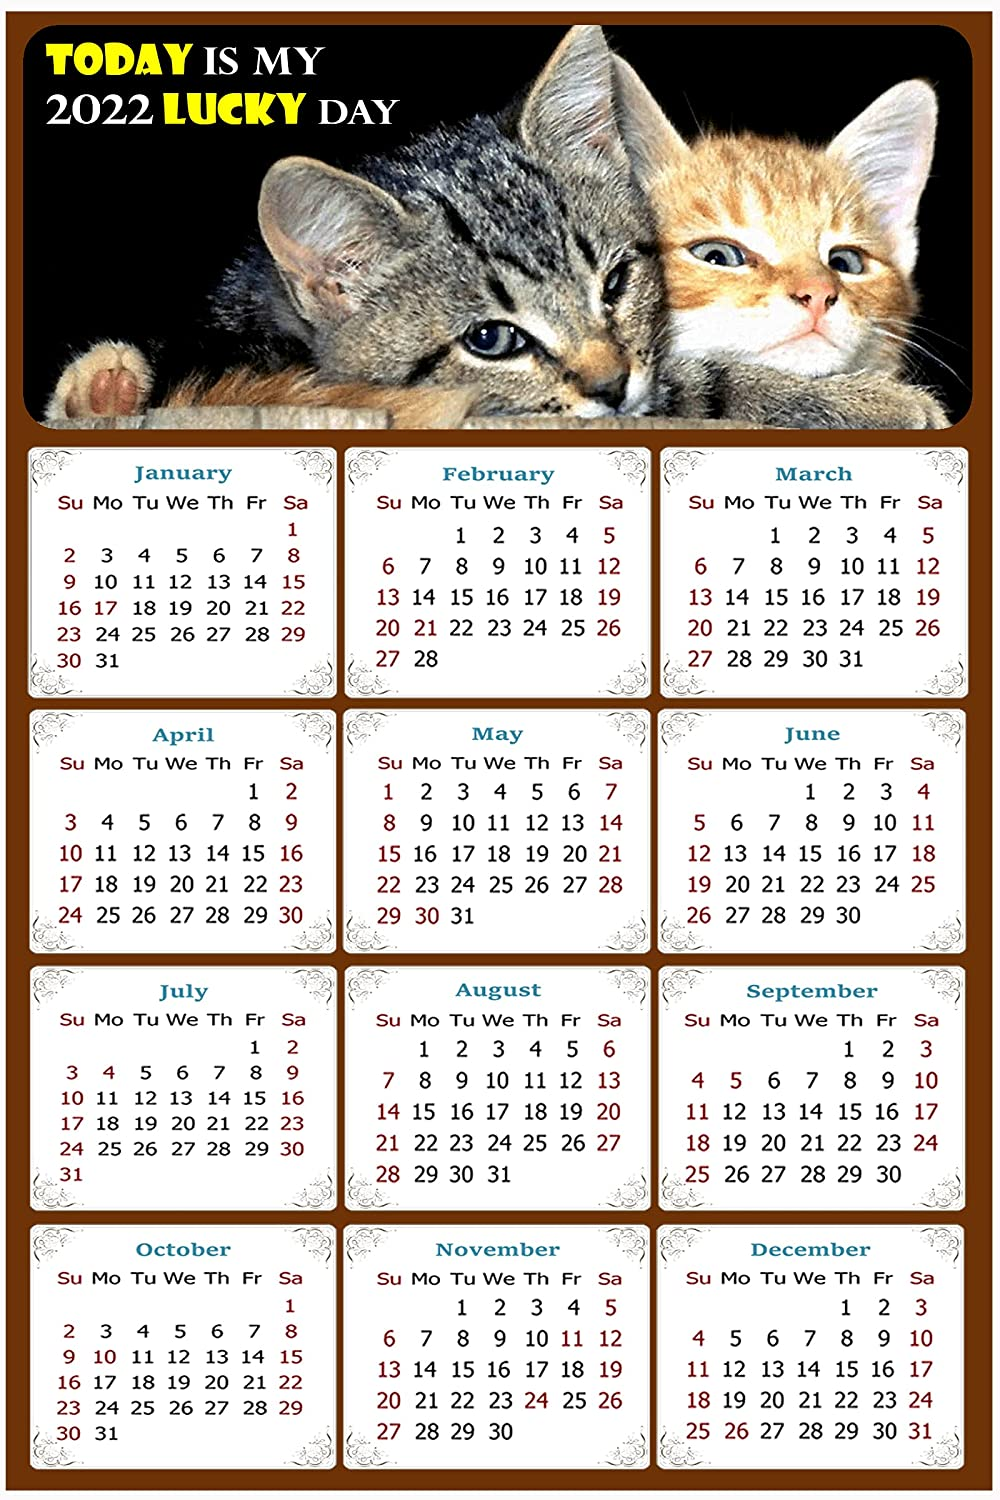 2022 Magnetic Calendar Chicago Mall - Magnets Today Lucky Da is my